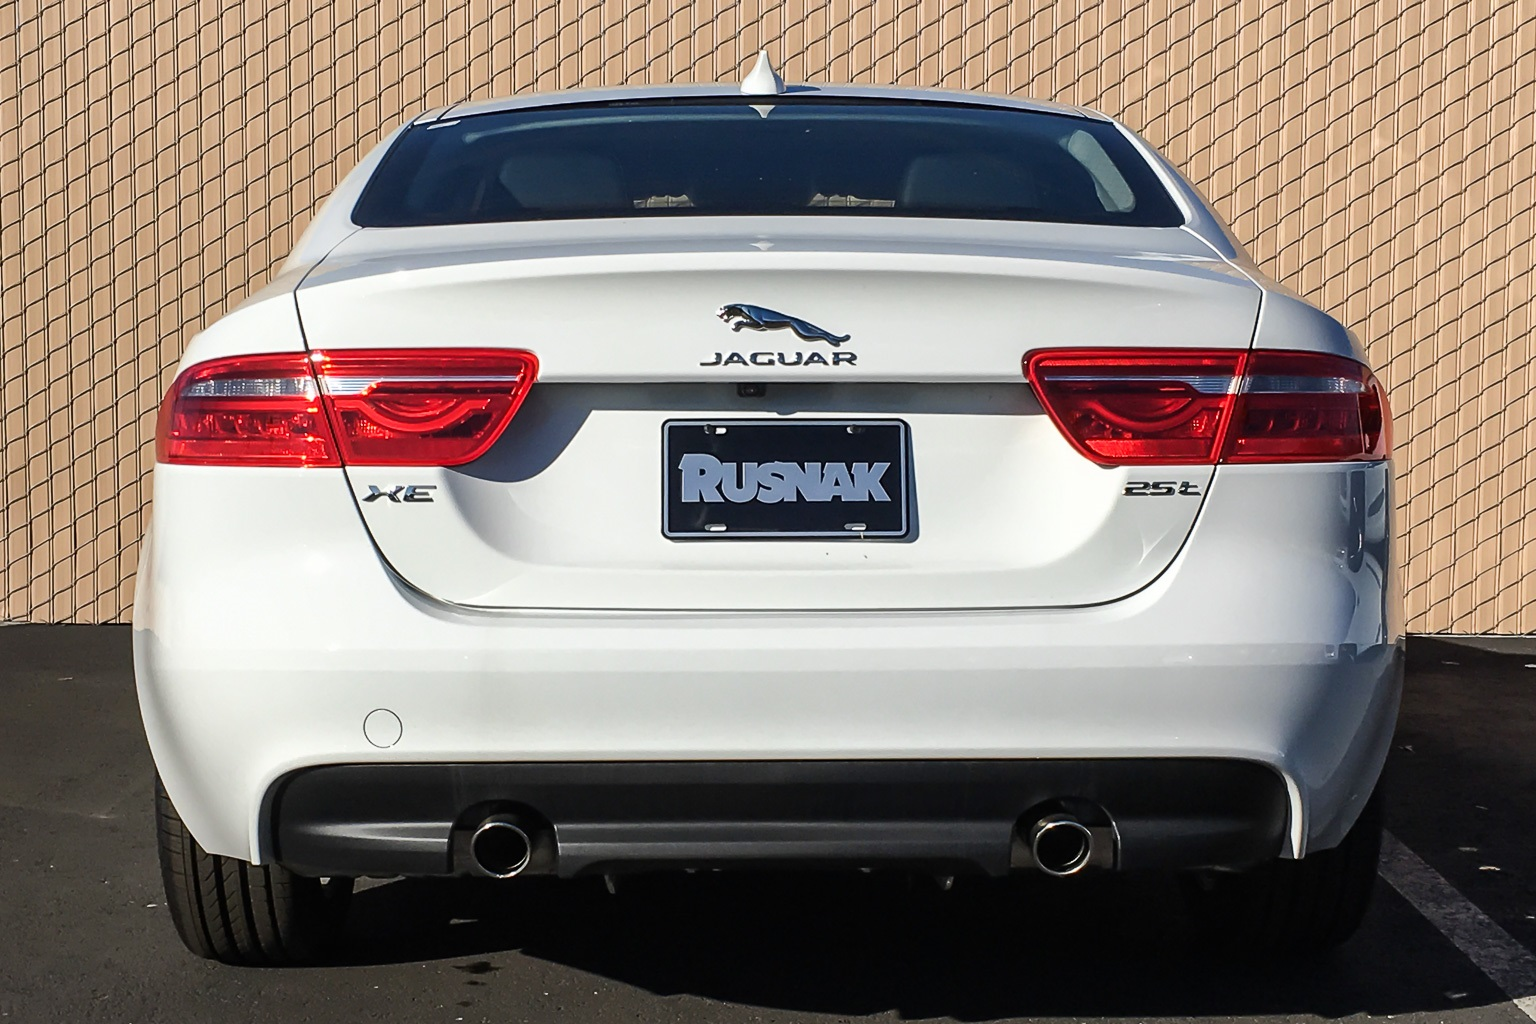 Jaguar Anaheim Hills >> Certified Pre-Owned 2019 Jaguar XE 25t Premium 4D Sedan in Pasadena #17R00187 | Rusnak Auto Group